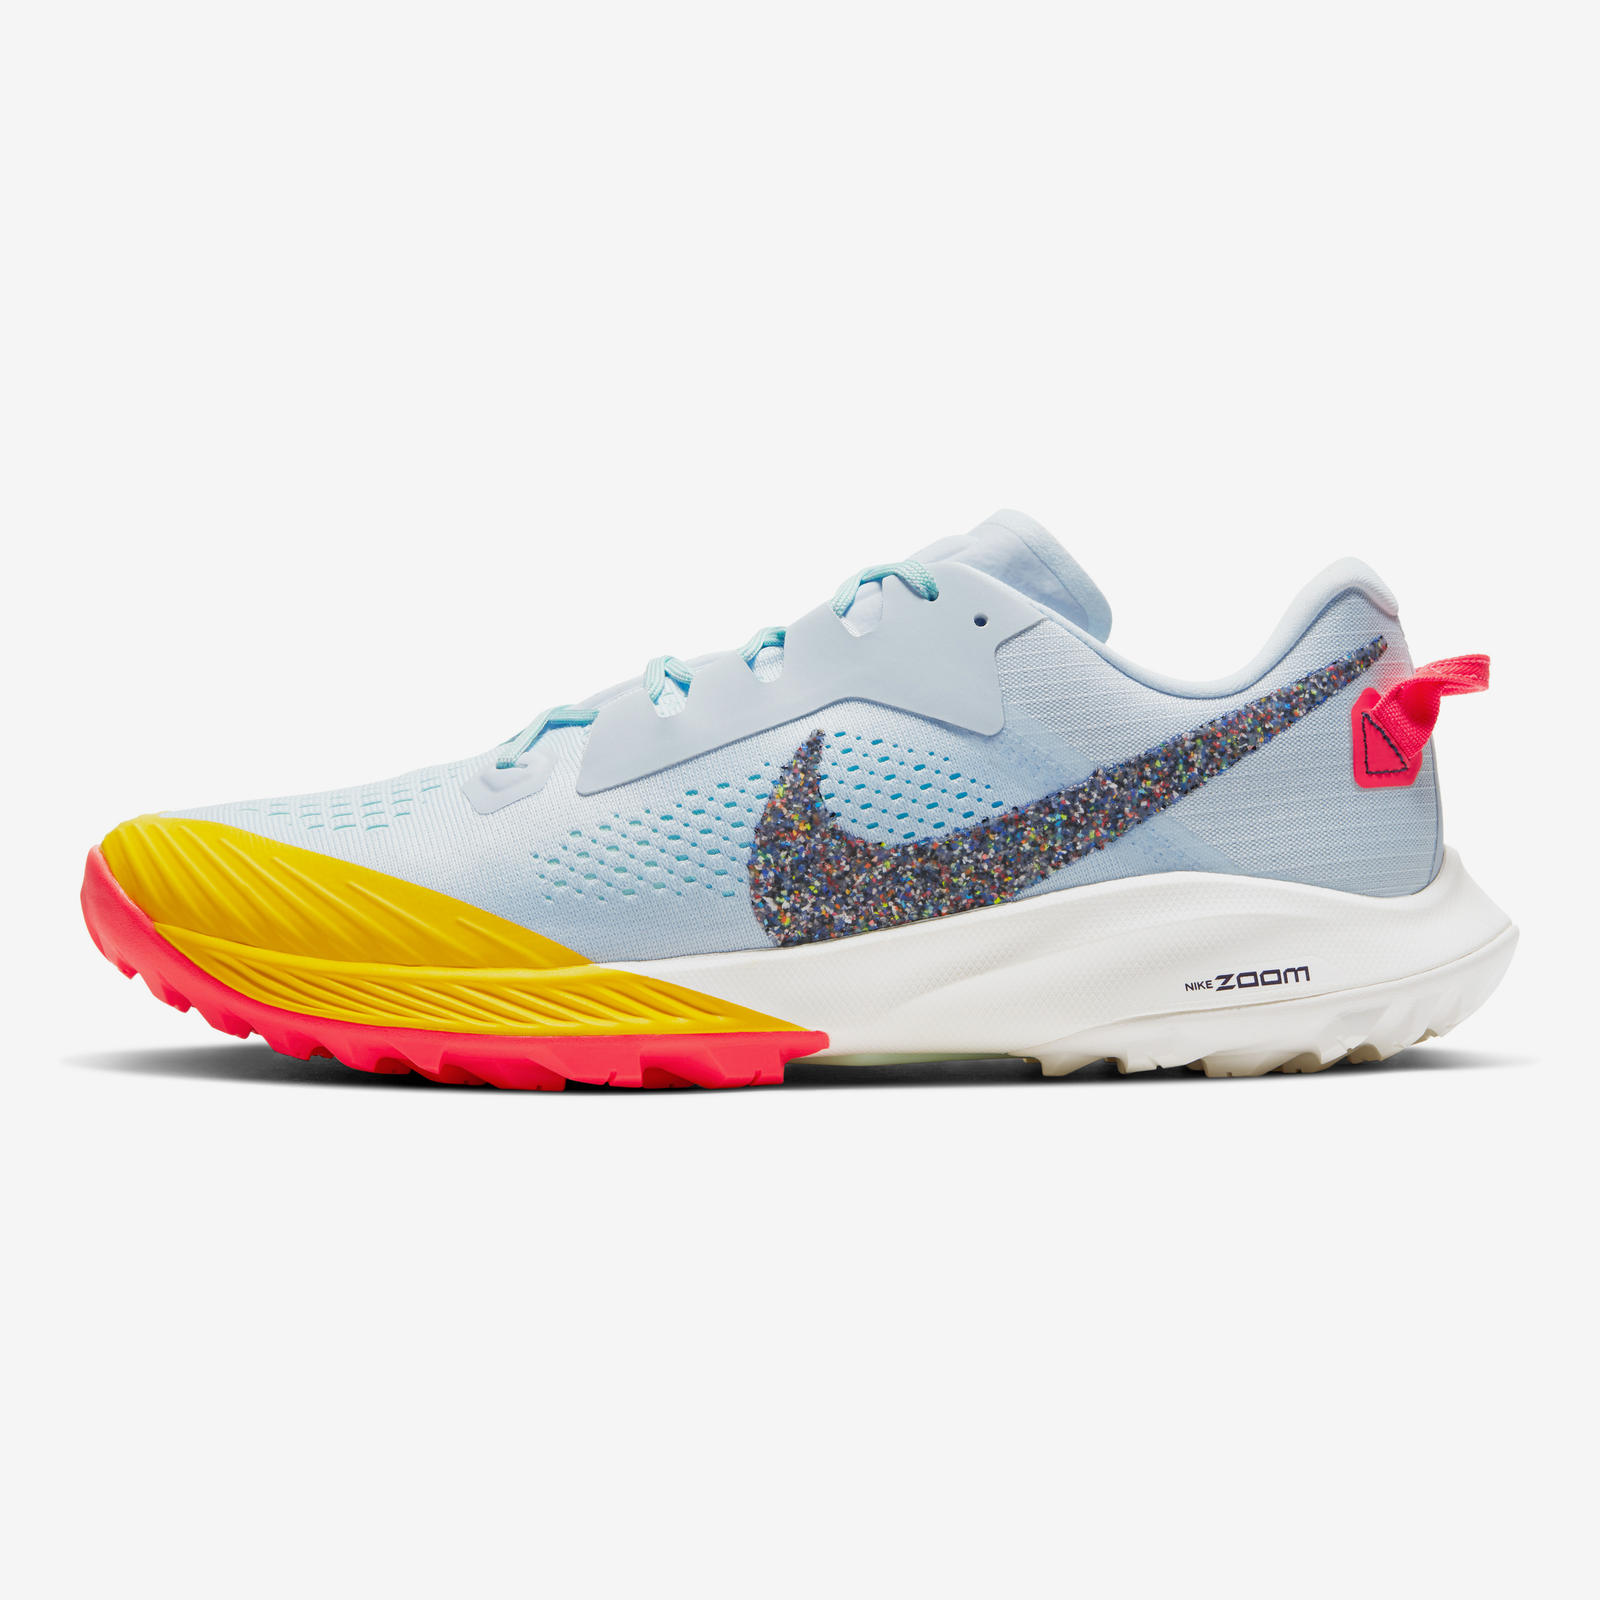 Nike Trail Air Zoom Kiger 6 Air Zoom Wildhorse 6 Official Images and Release Date 10